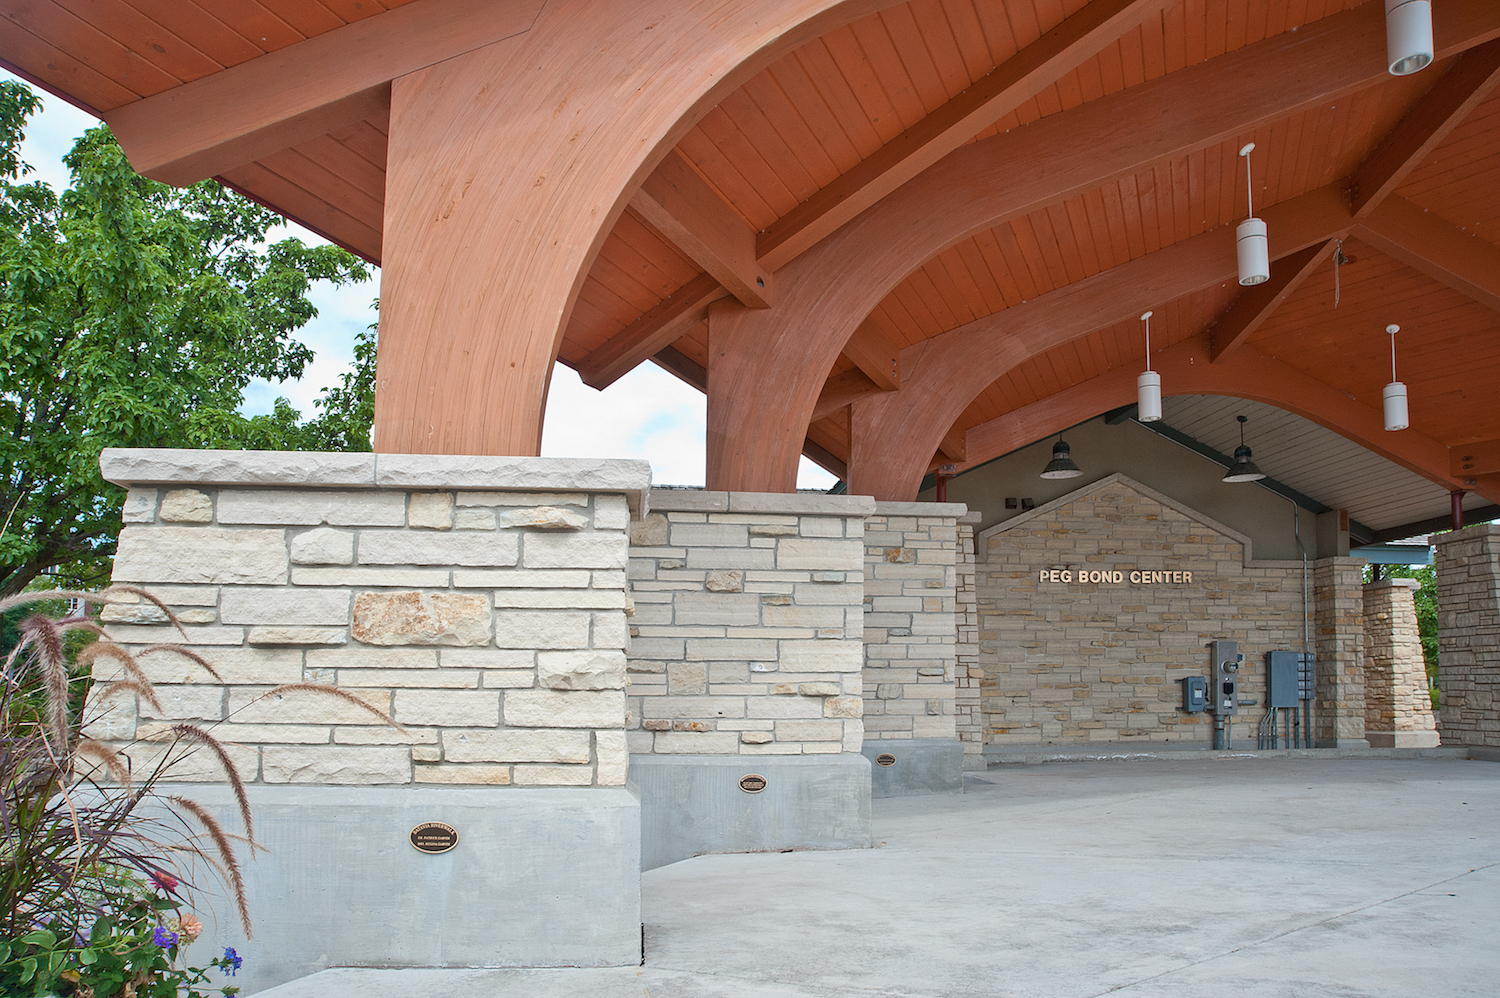 The curved timber beams and the stone piers that step down in size as they spread forward make the band shell appear larger.